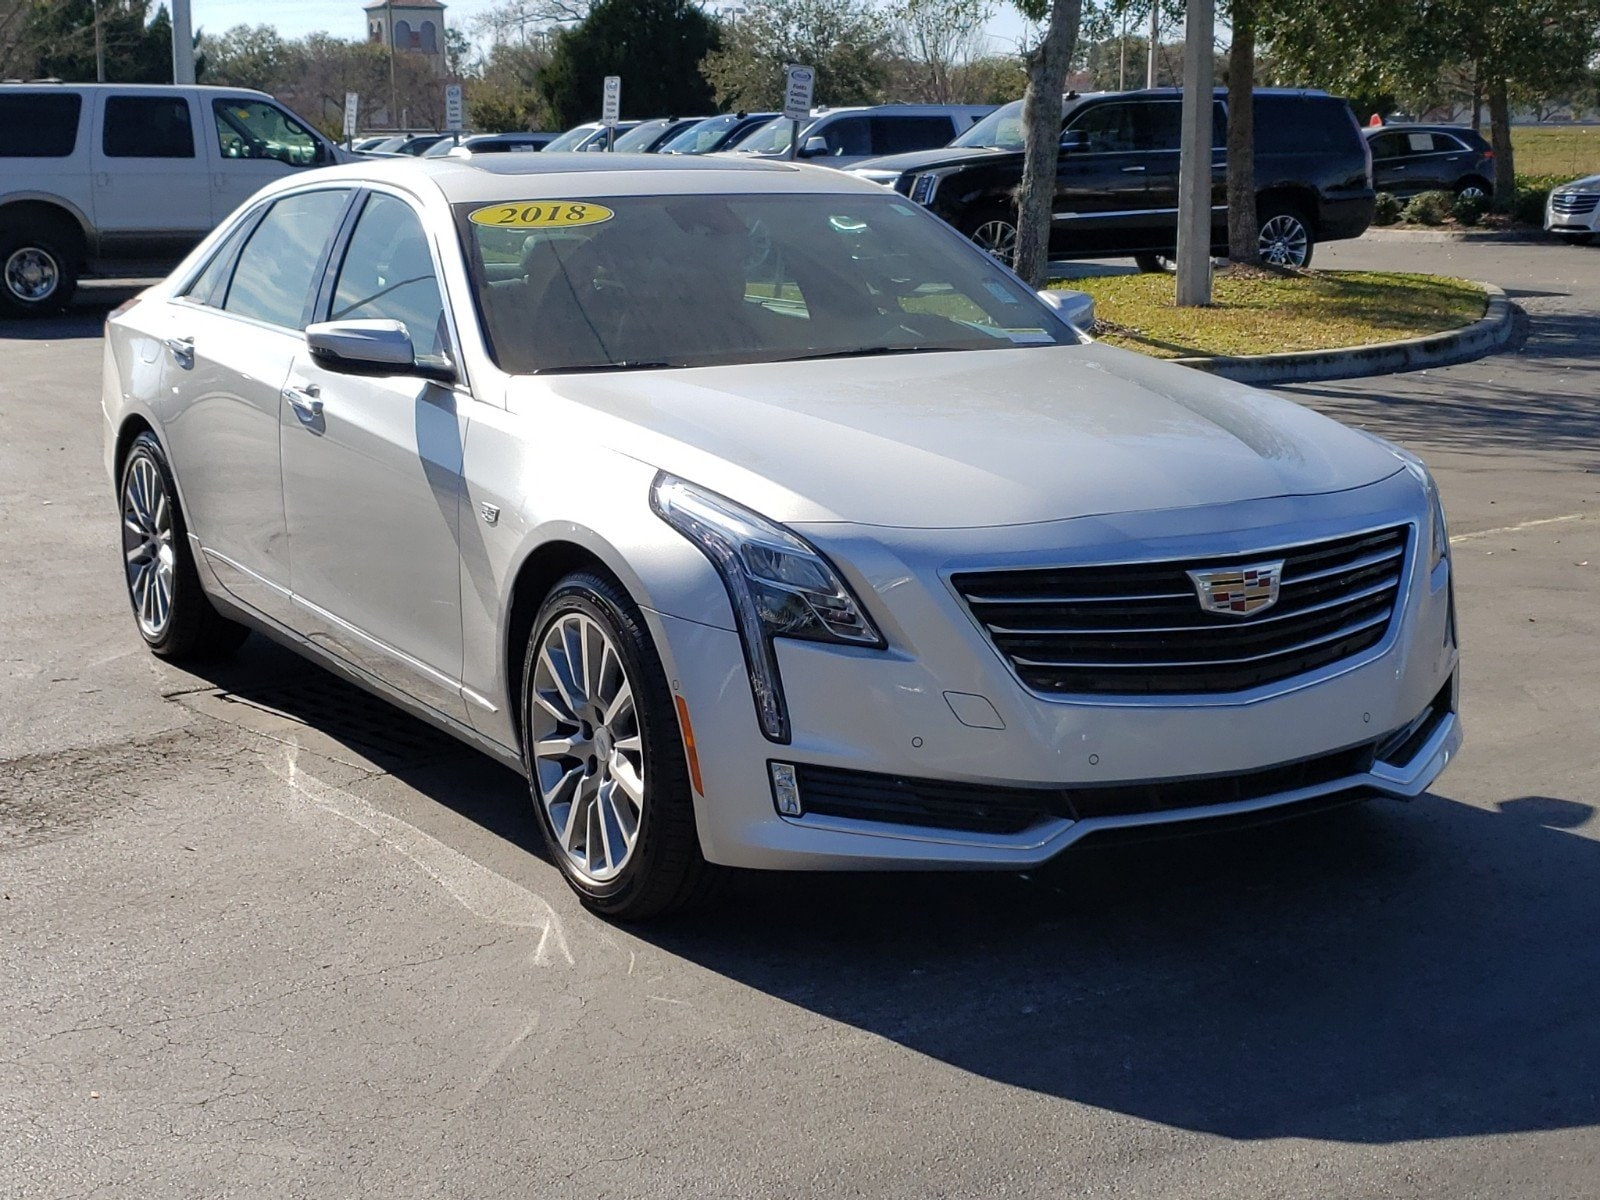 2018 CADILLAC CT6 3.6L Premium Luxury Sedan